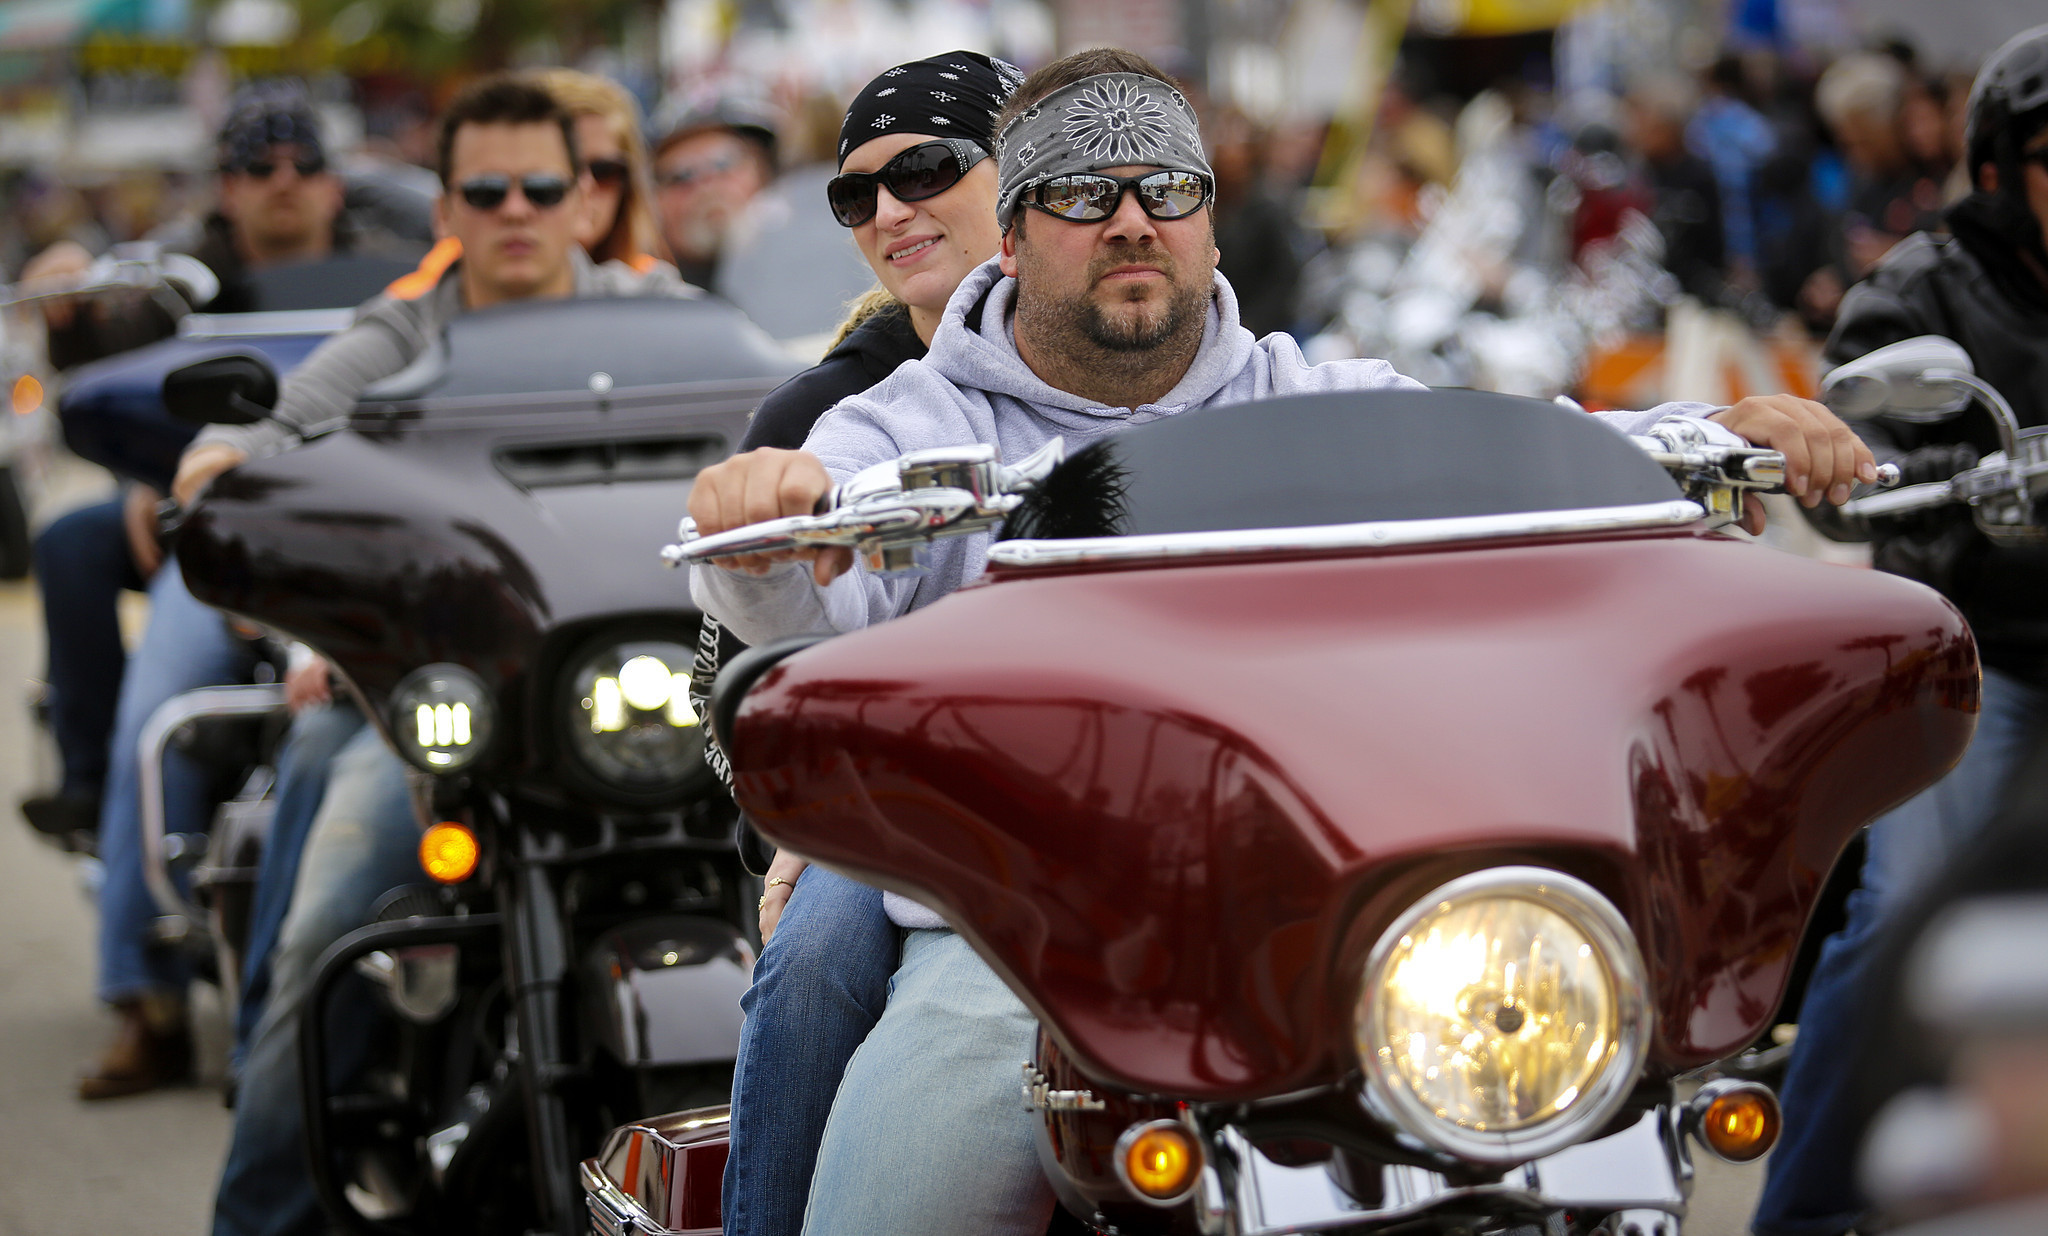 Florida Bike Fests Rides And Rallies